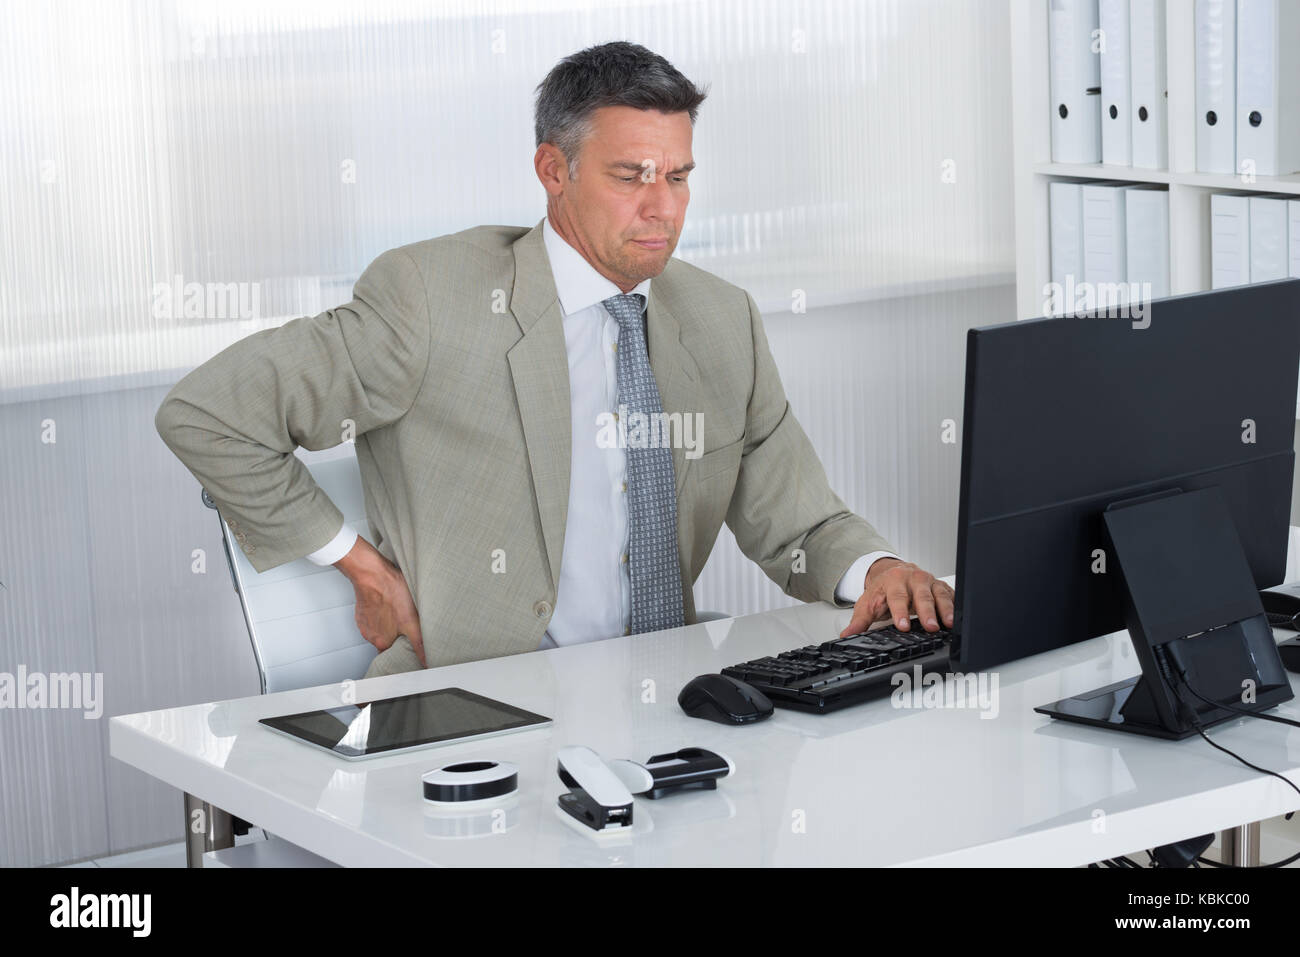 Mature businessman suffering from back pain at desk in office - Stock Image